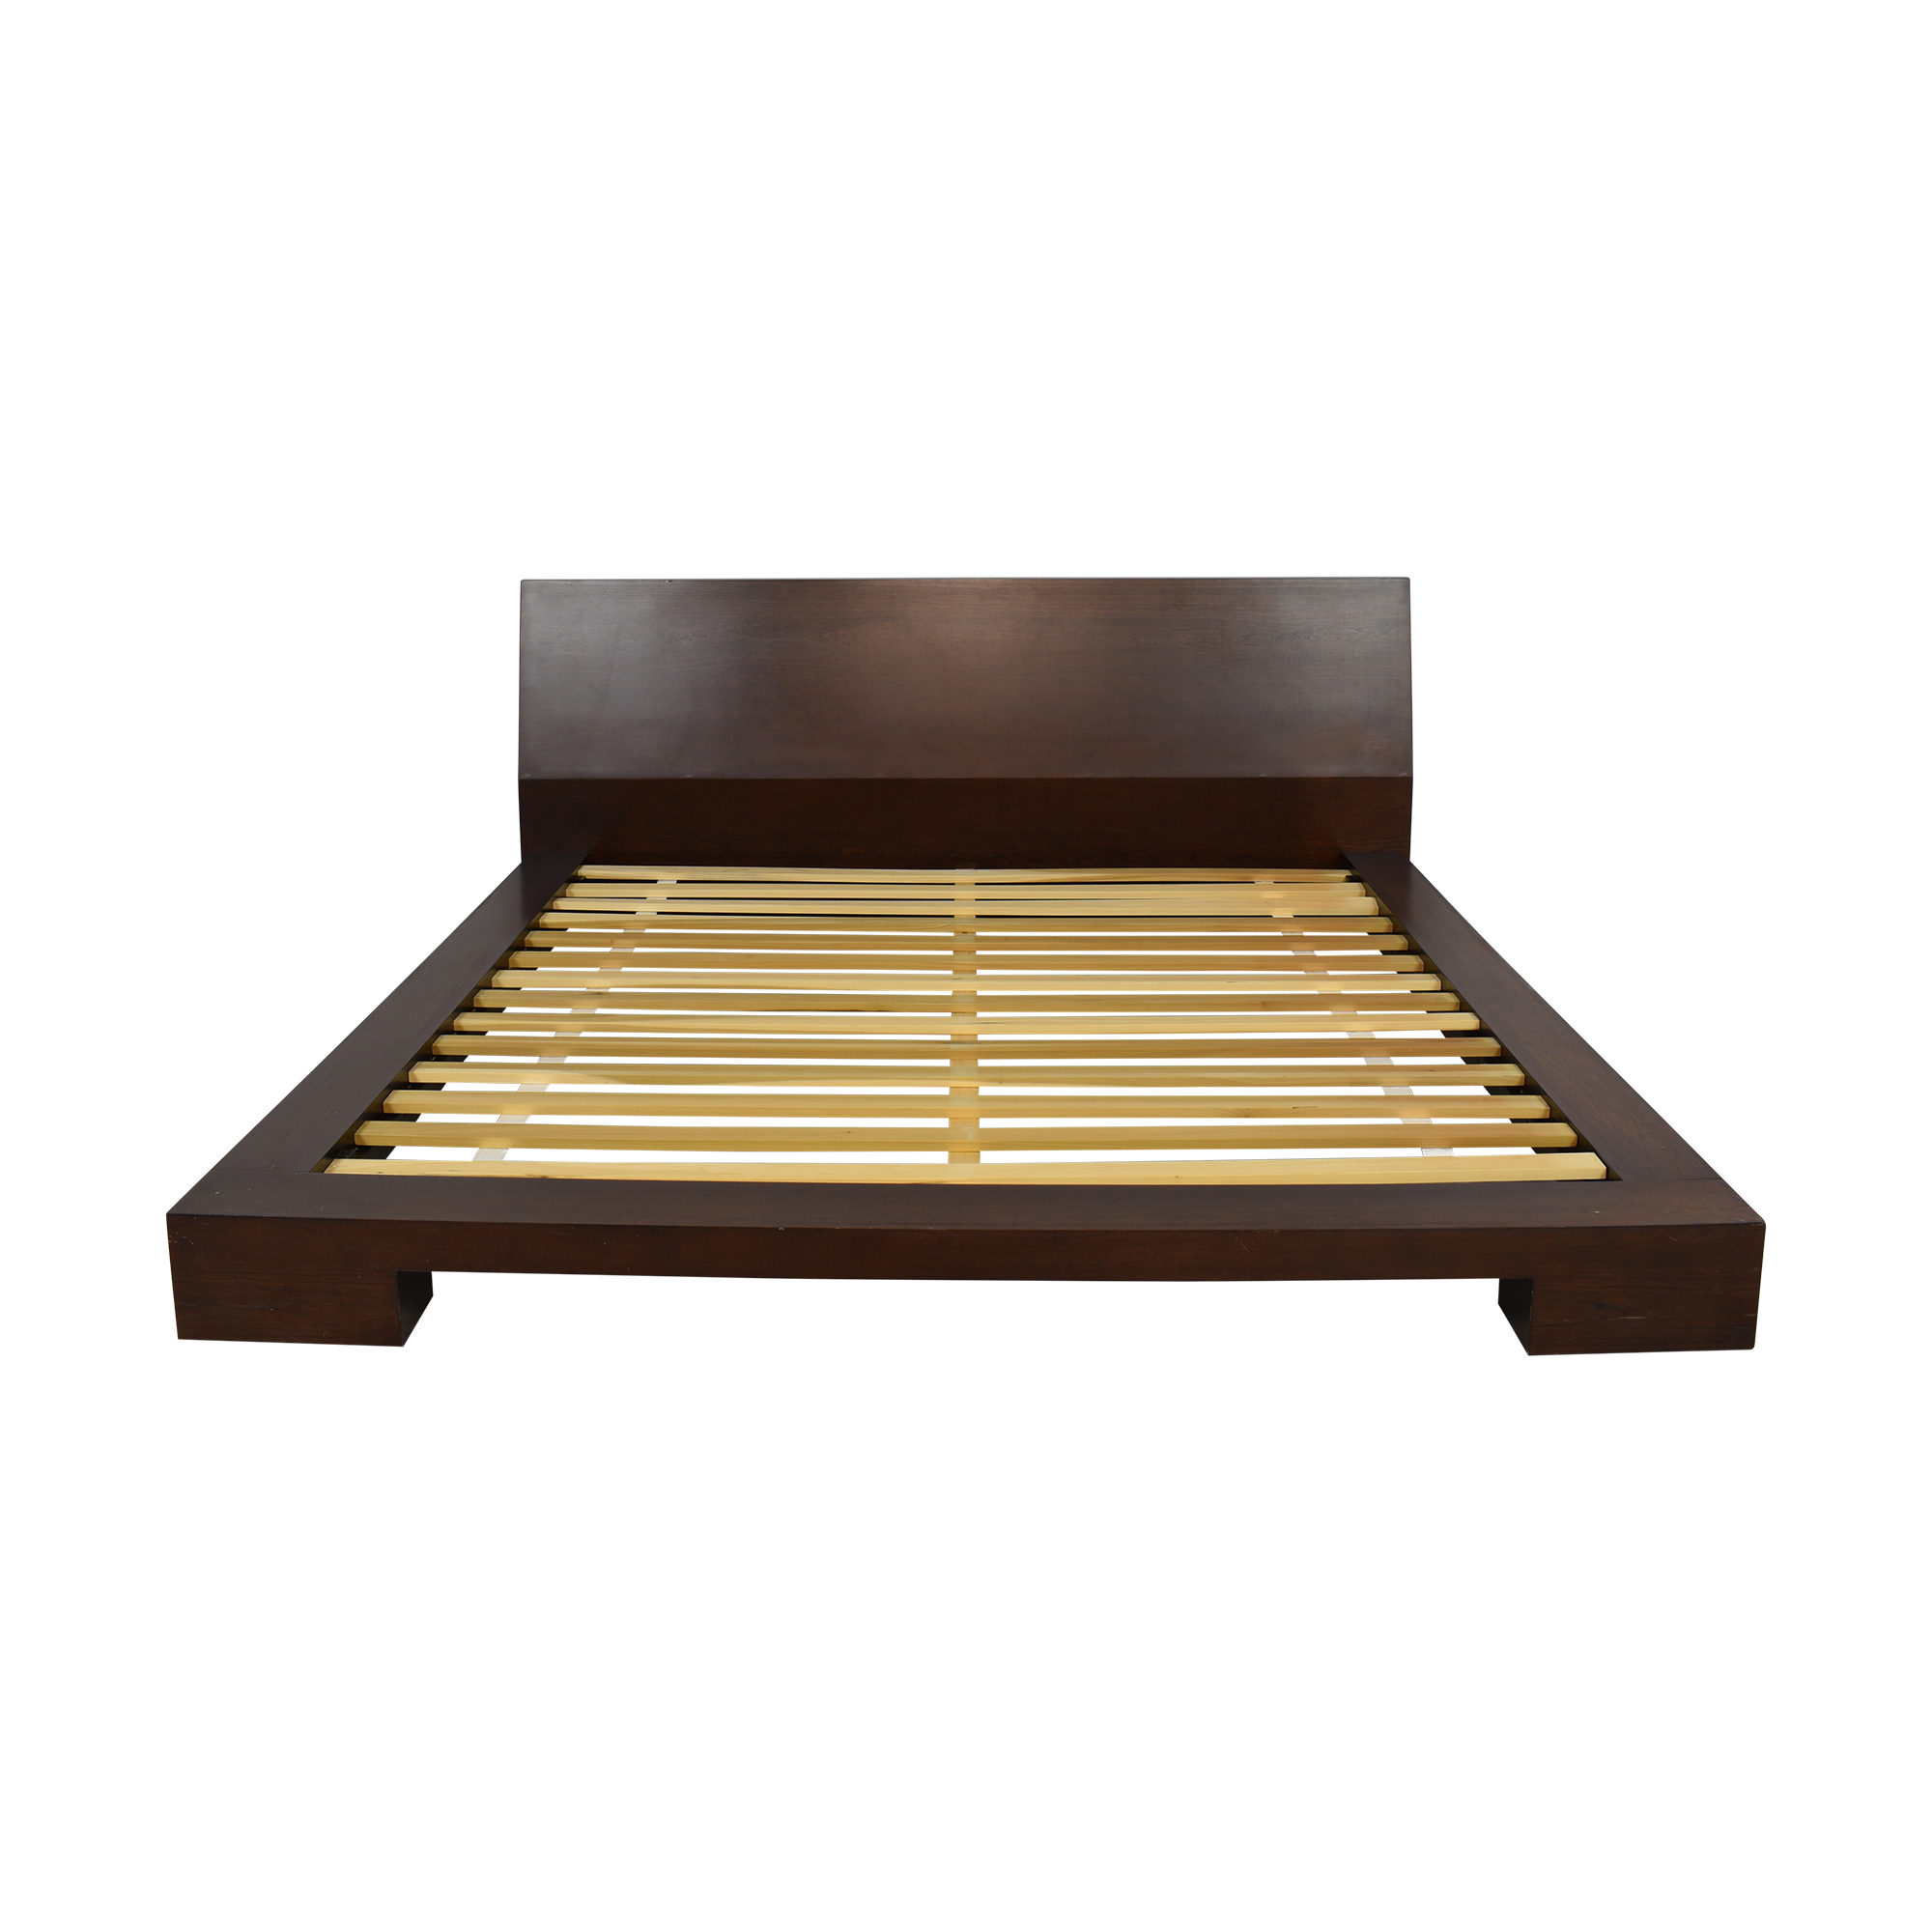 shop Crate & Barrel Asher King Bed Crate & Barrel Beds